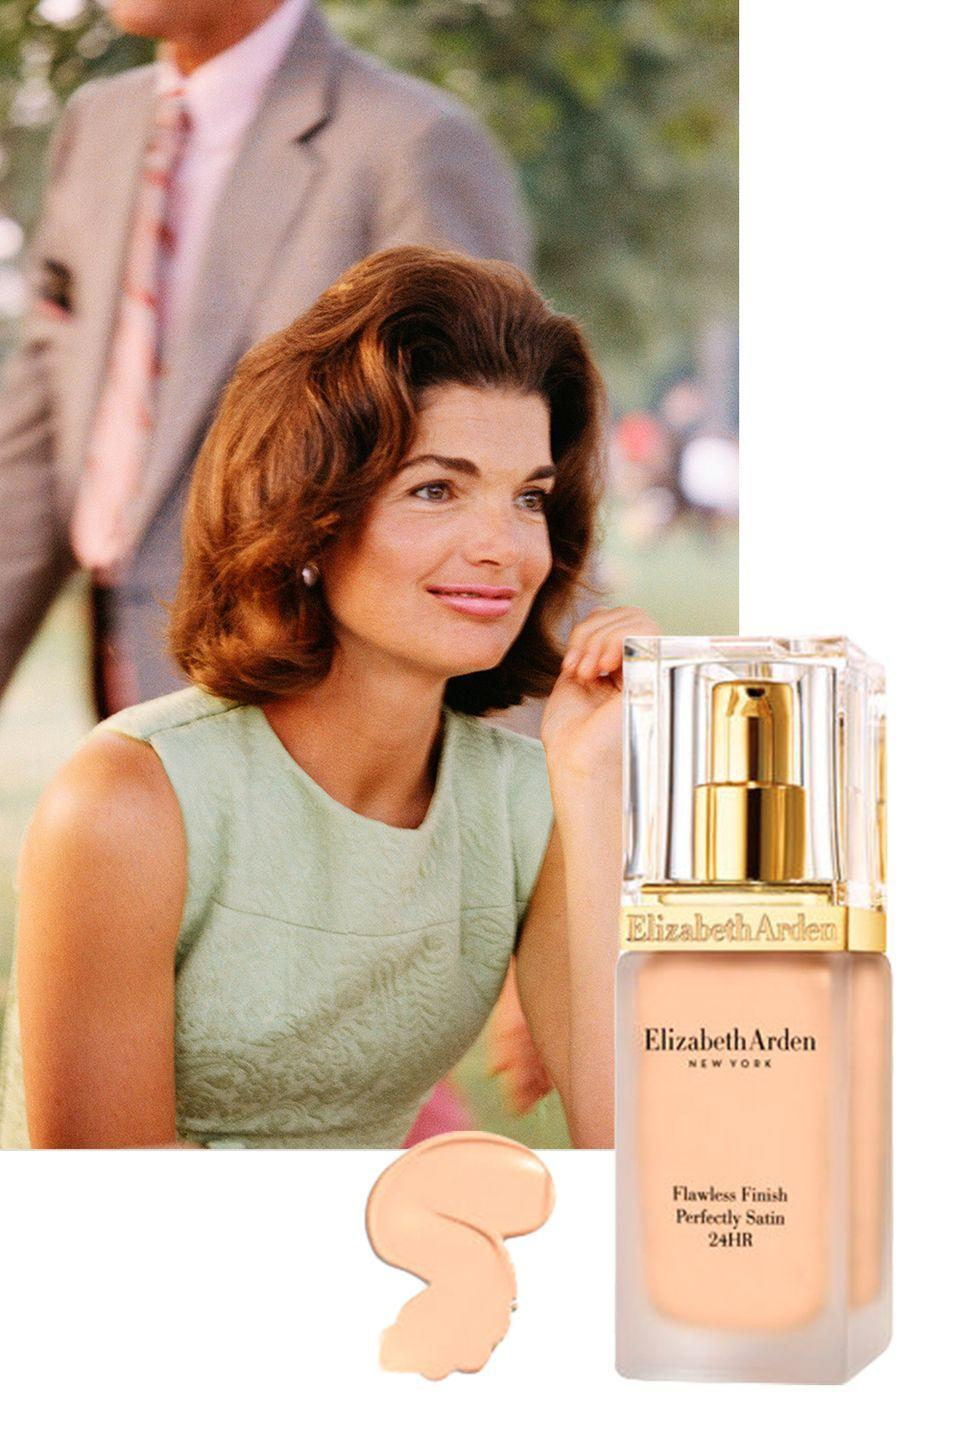 "<p>As the former first lady aged, her skin suffered from sun spots, likely the result of her many holidays in the South of France, Greece, and Rhode Island. To cover up the discoloration, she <a href=""http://www.vanityfair.com/style/1995/11/jackie-kenedy-199511"" rel=""nofollow noopener"" target=""_blank"" data-ylk=""slk:turned"" class=""link rapid-noclick-resp"">turned</a> to Elizabeth Arden's <span><a href=""http://www.elizabetharden.com/flawless-finish-perfectly-satin-1002FFLC000.html?dwvar_1002FFLC000_color=fflc007&cgid=foundation"" rel=""nofollow noopener"" target=""_blank"" data-ylk=""slk:Flawless Finish Foundation"" class=""link rapid-noclick-resp"">Flawless Finish Foundation</a>, which gave her a fresh-faced, even</span> complexion.</p><p><a class=""link rapid-noclick-resp"" href=""https://go.redirectingat.com?id=74968X1596630&url=https%3A%2F%2Fwww.elizabetharden.com%2Fflawless-finish-perfectly-satin-1002FFLC000.html&sref=https%3A%2F%2Fwww.goodhousekeeping.com%2Flife%2Fentertainment%2Fg33481959%2Fjackie-kennedy-beauty-tips%2F"" rel=""nofollow noopener"" target=""_blank"" data-ylk=""slk:SHOP NOW"">SHOP NOW</a> <em>Elizabeth Arden Flawless Finish Foundation, $39</em><br></p>"